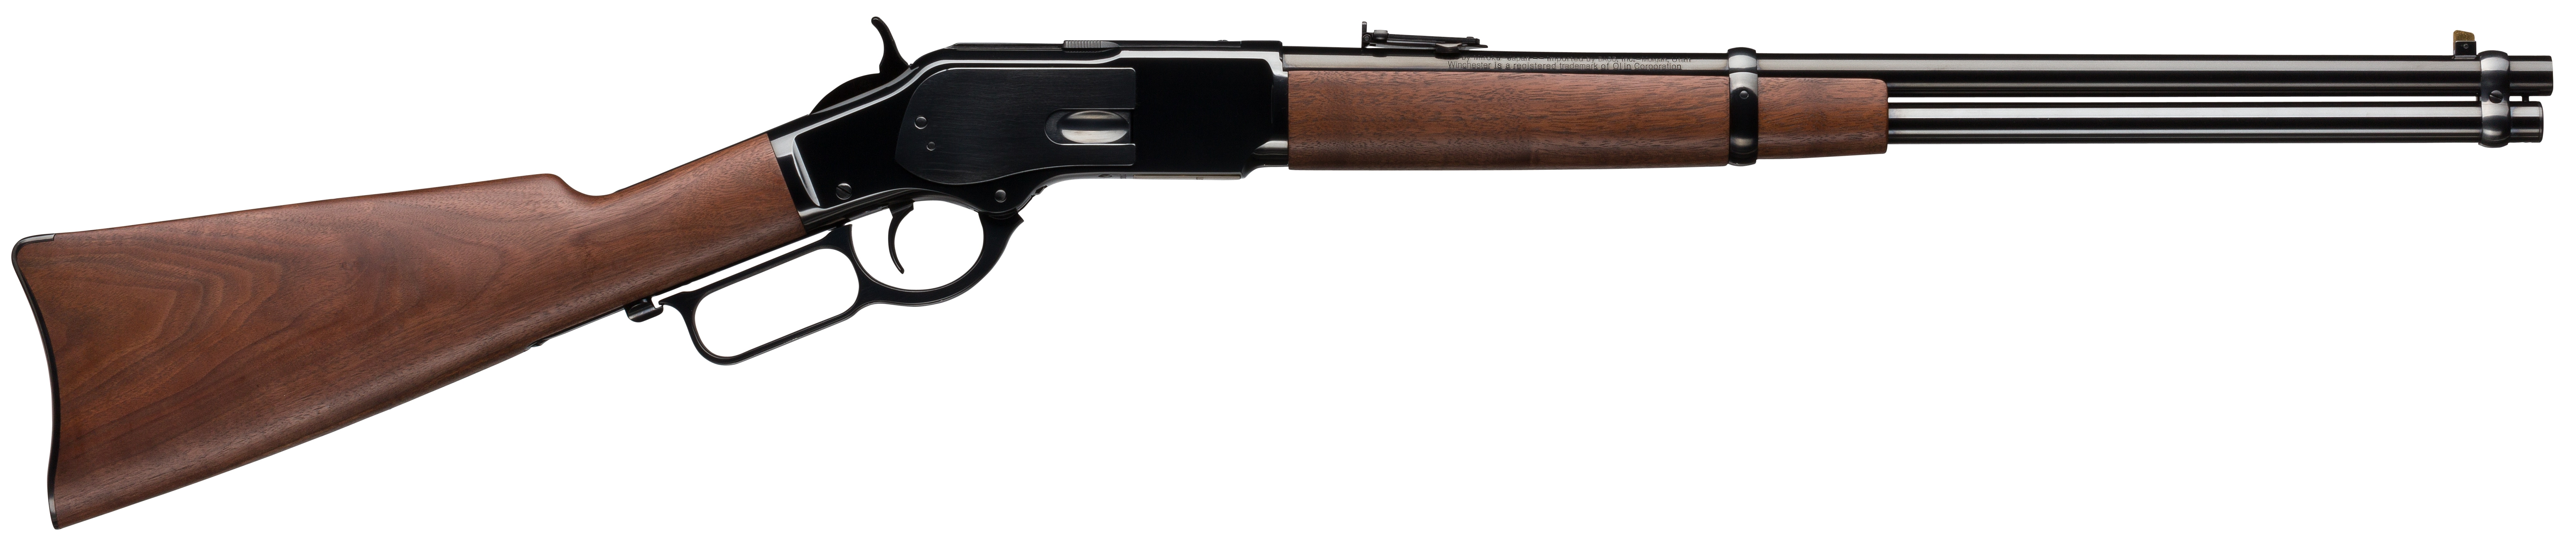 Winchester 1873 Carbine Lever-Action Rifle - 45 Colt 20